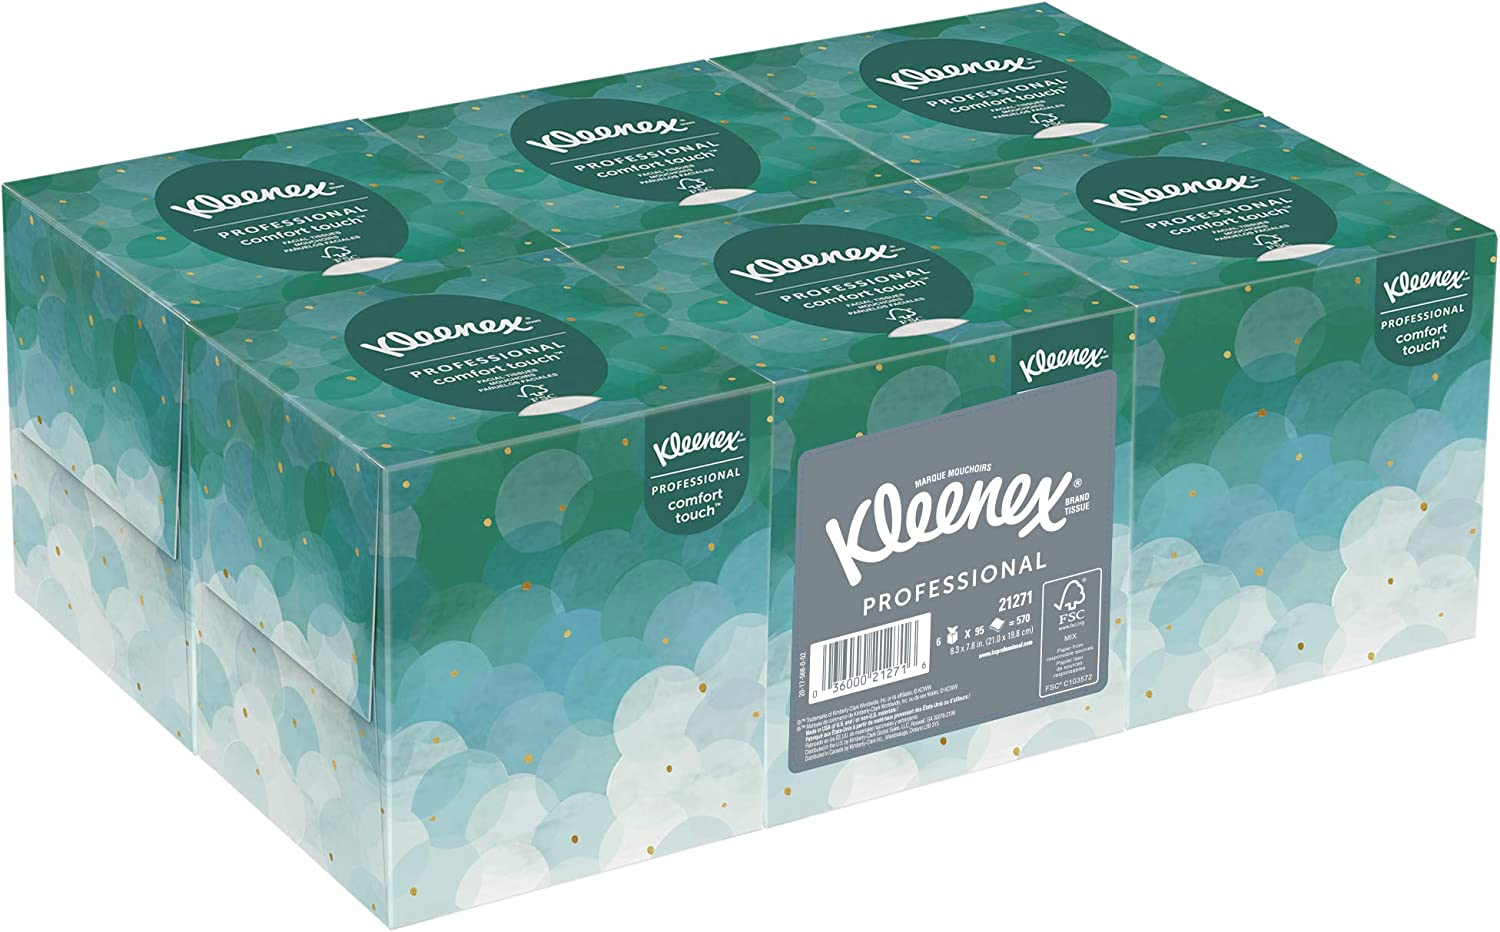 Kleenex Professional Facial Tissue Cube for Business (21271), Upright Face Tissue Box, 6 Boxes of 95 sheets (Pack of 570)